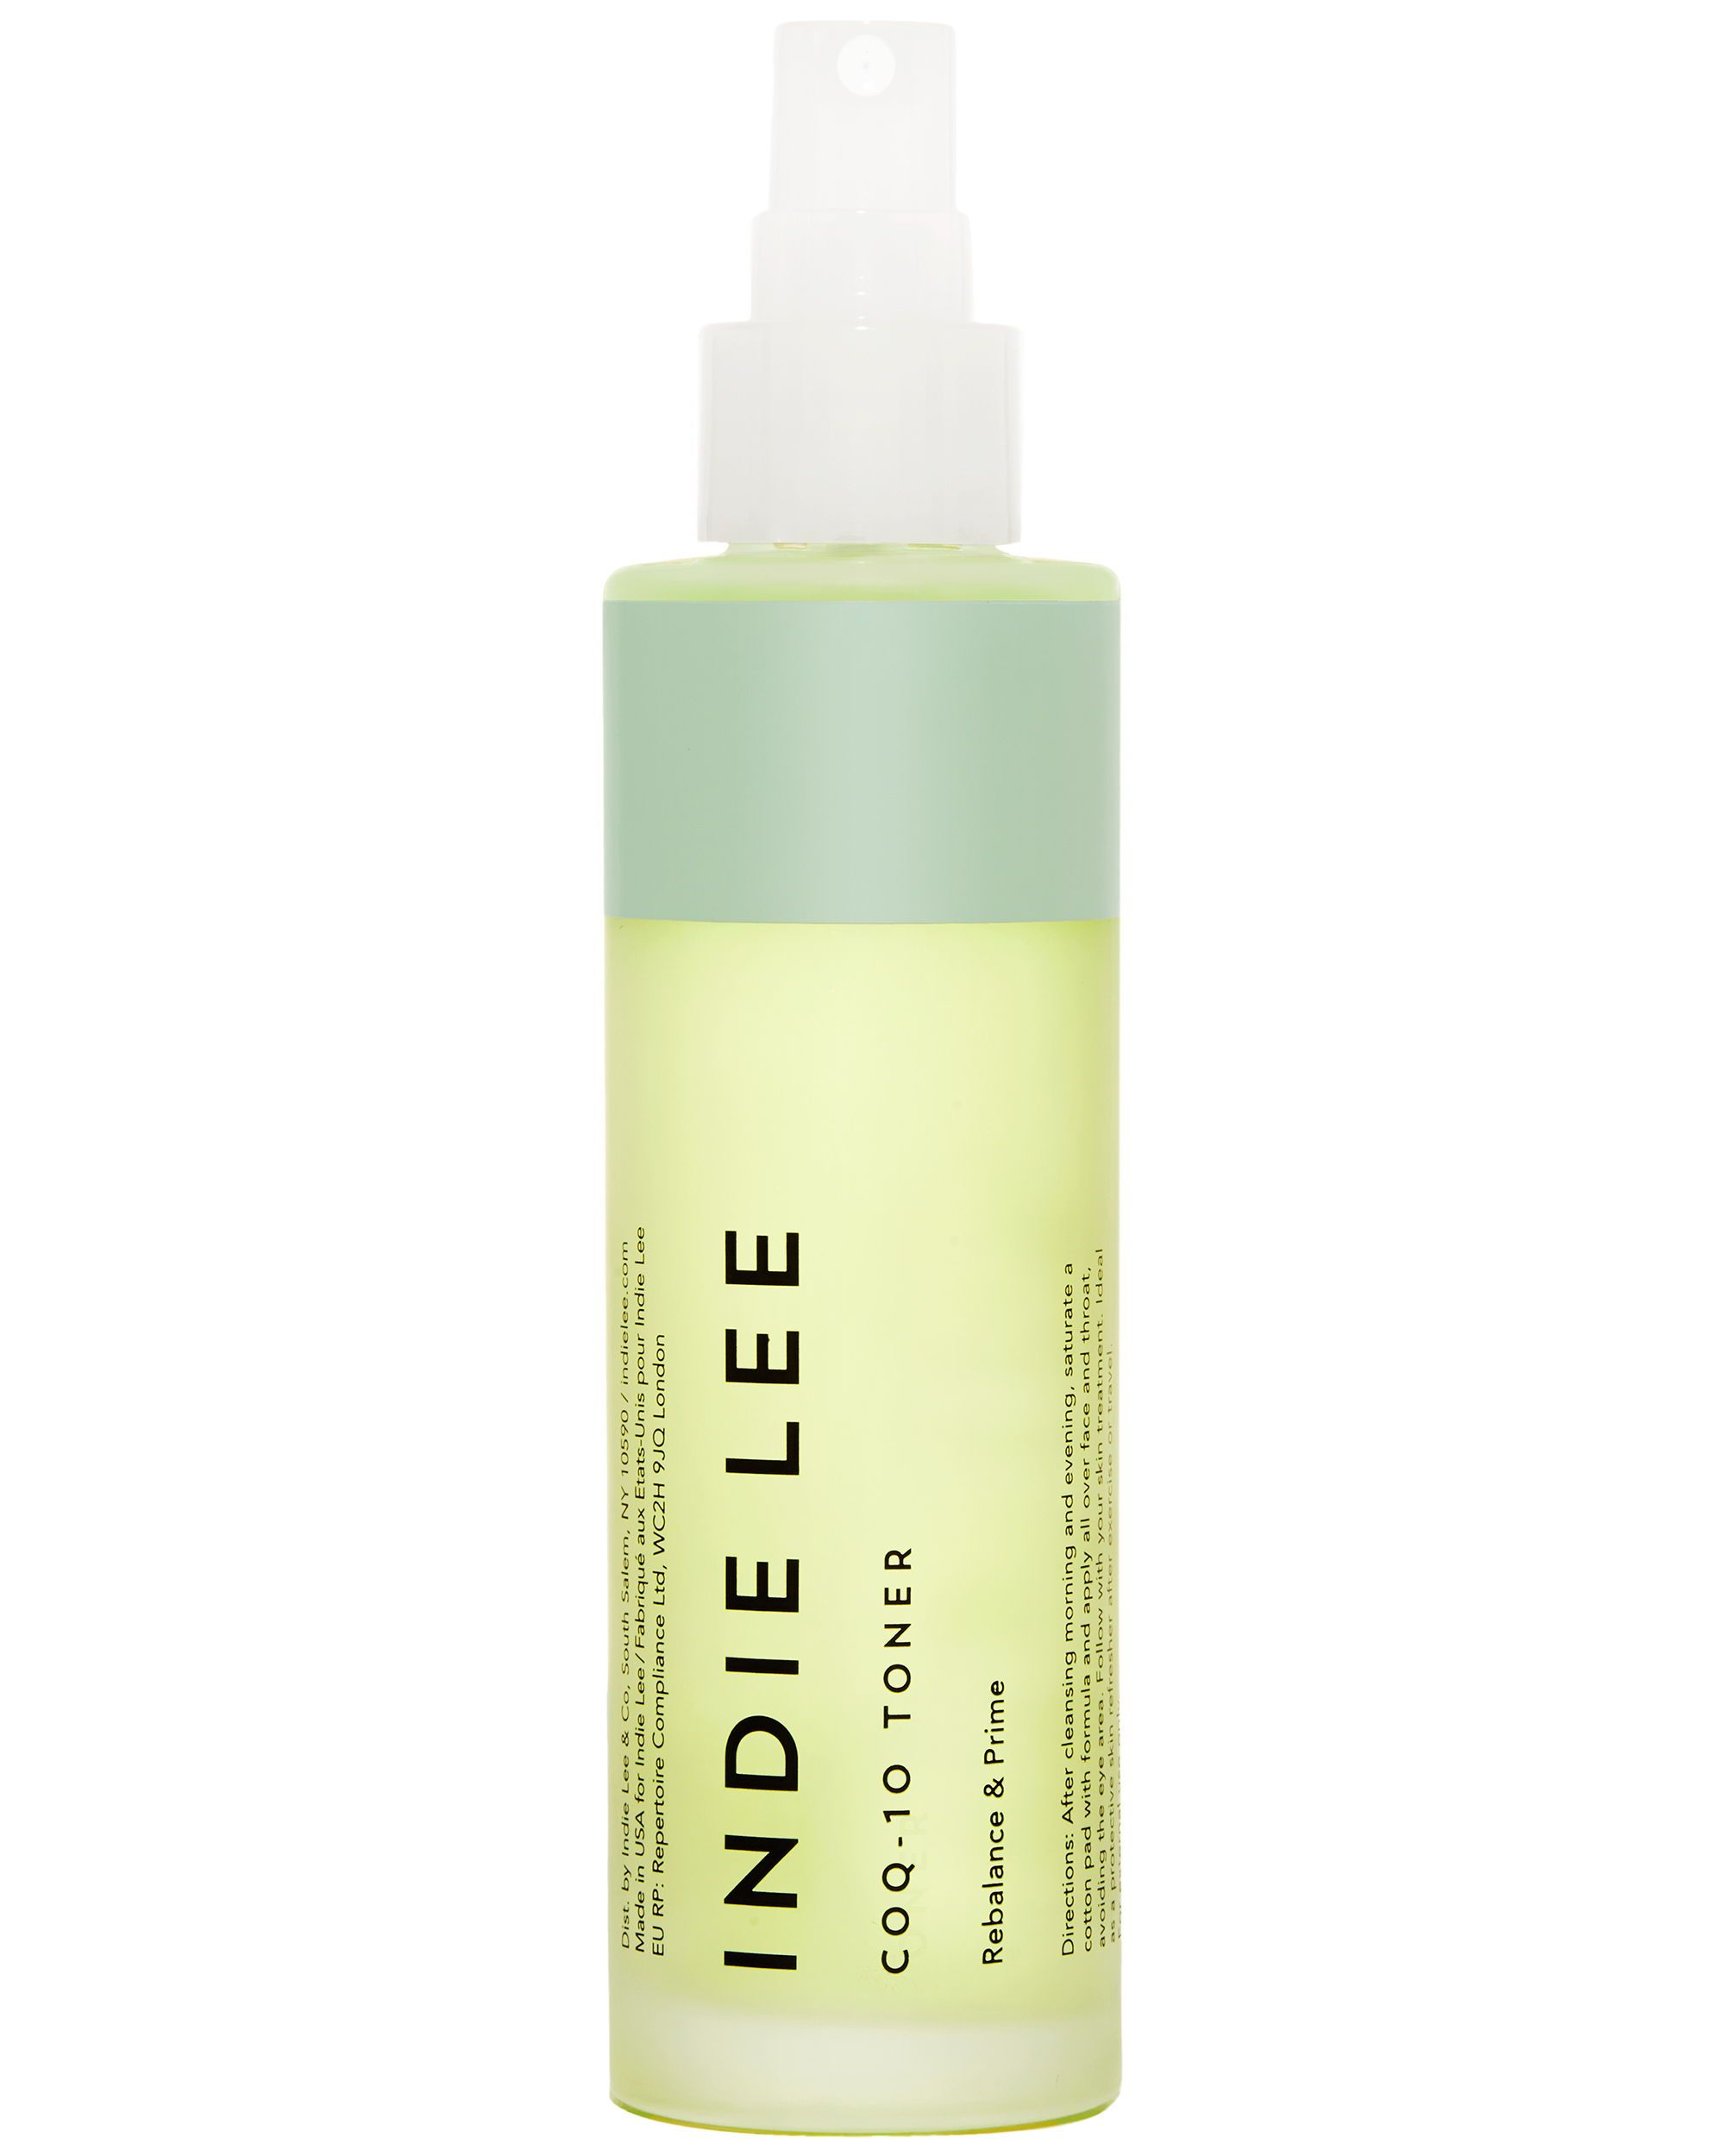 Reviewed The Best And Worst Skincare Products From Indie Lee Indie Lee Face Products Skincare Oil Free Moisturizers